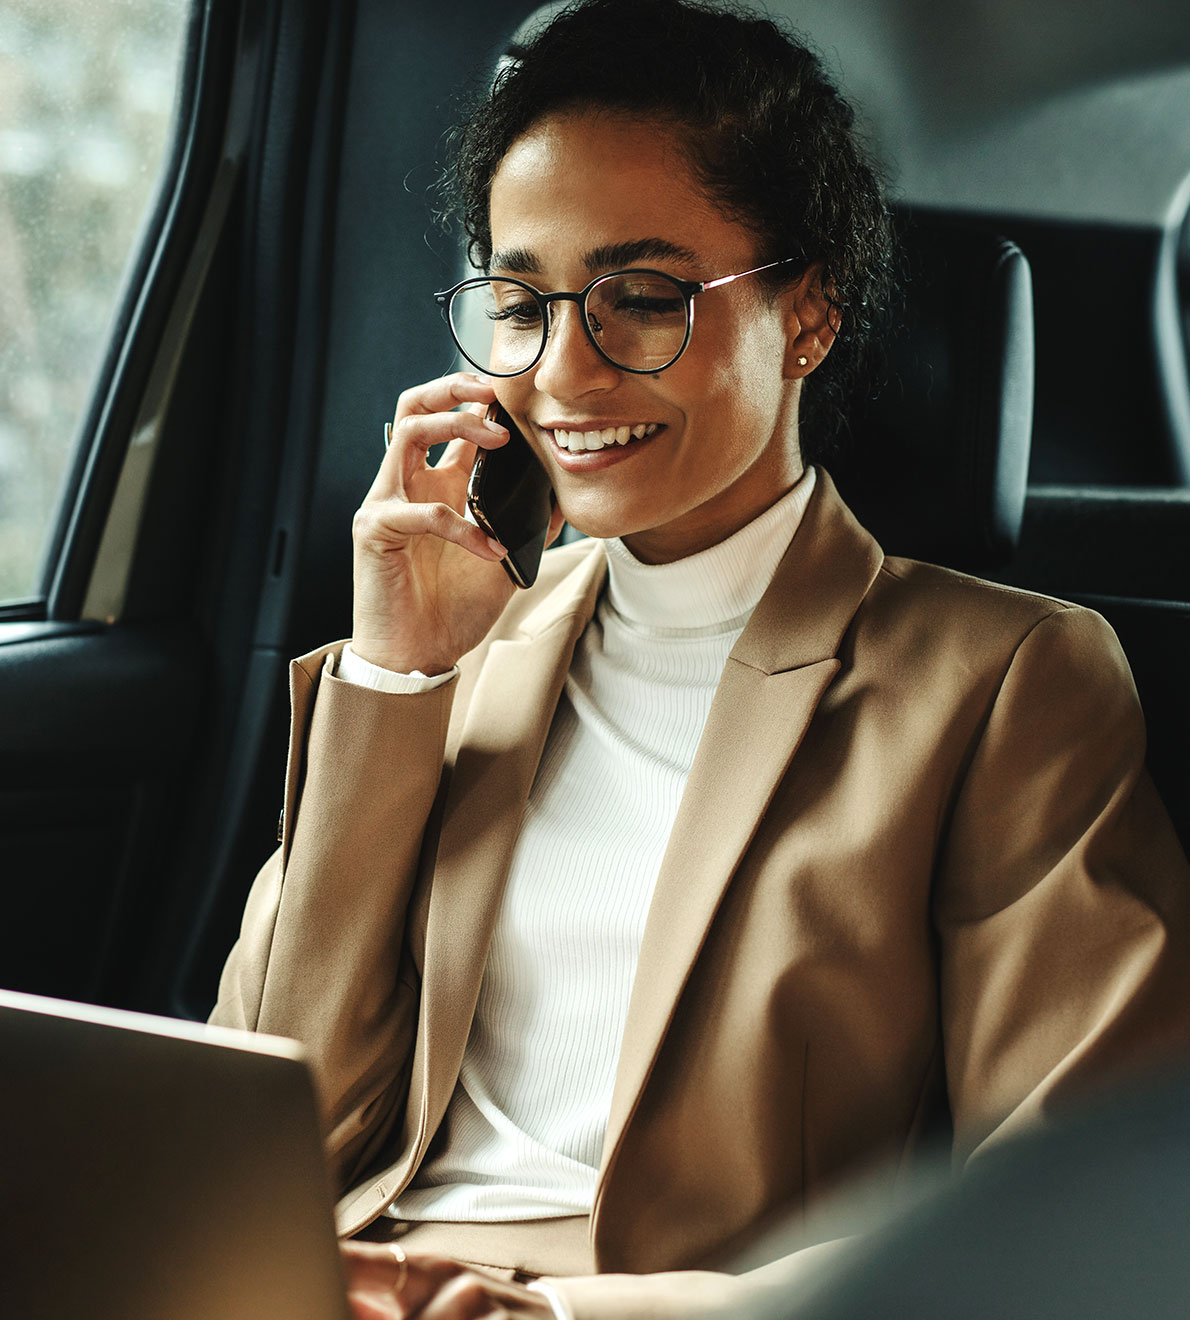 Find the ultimate virtual assistant for your business